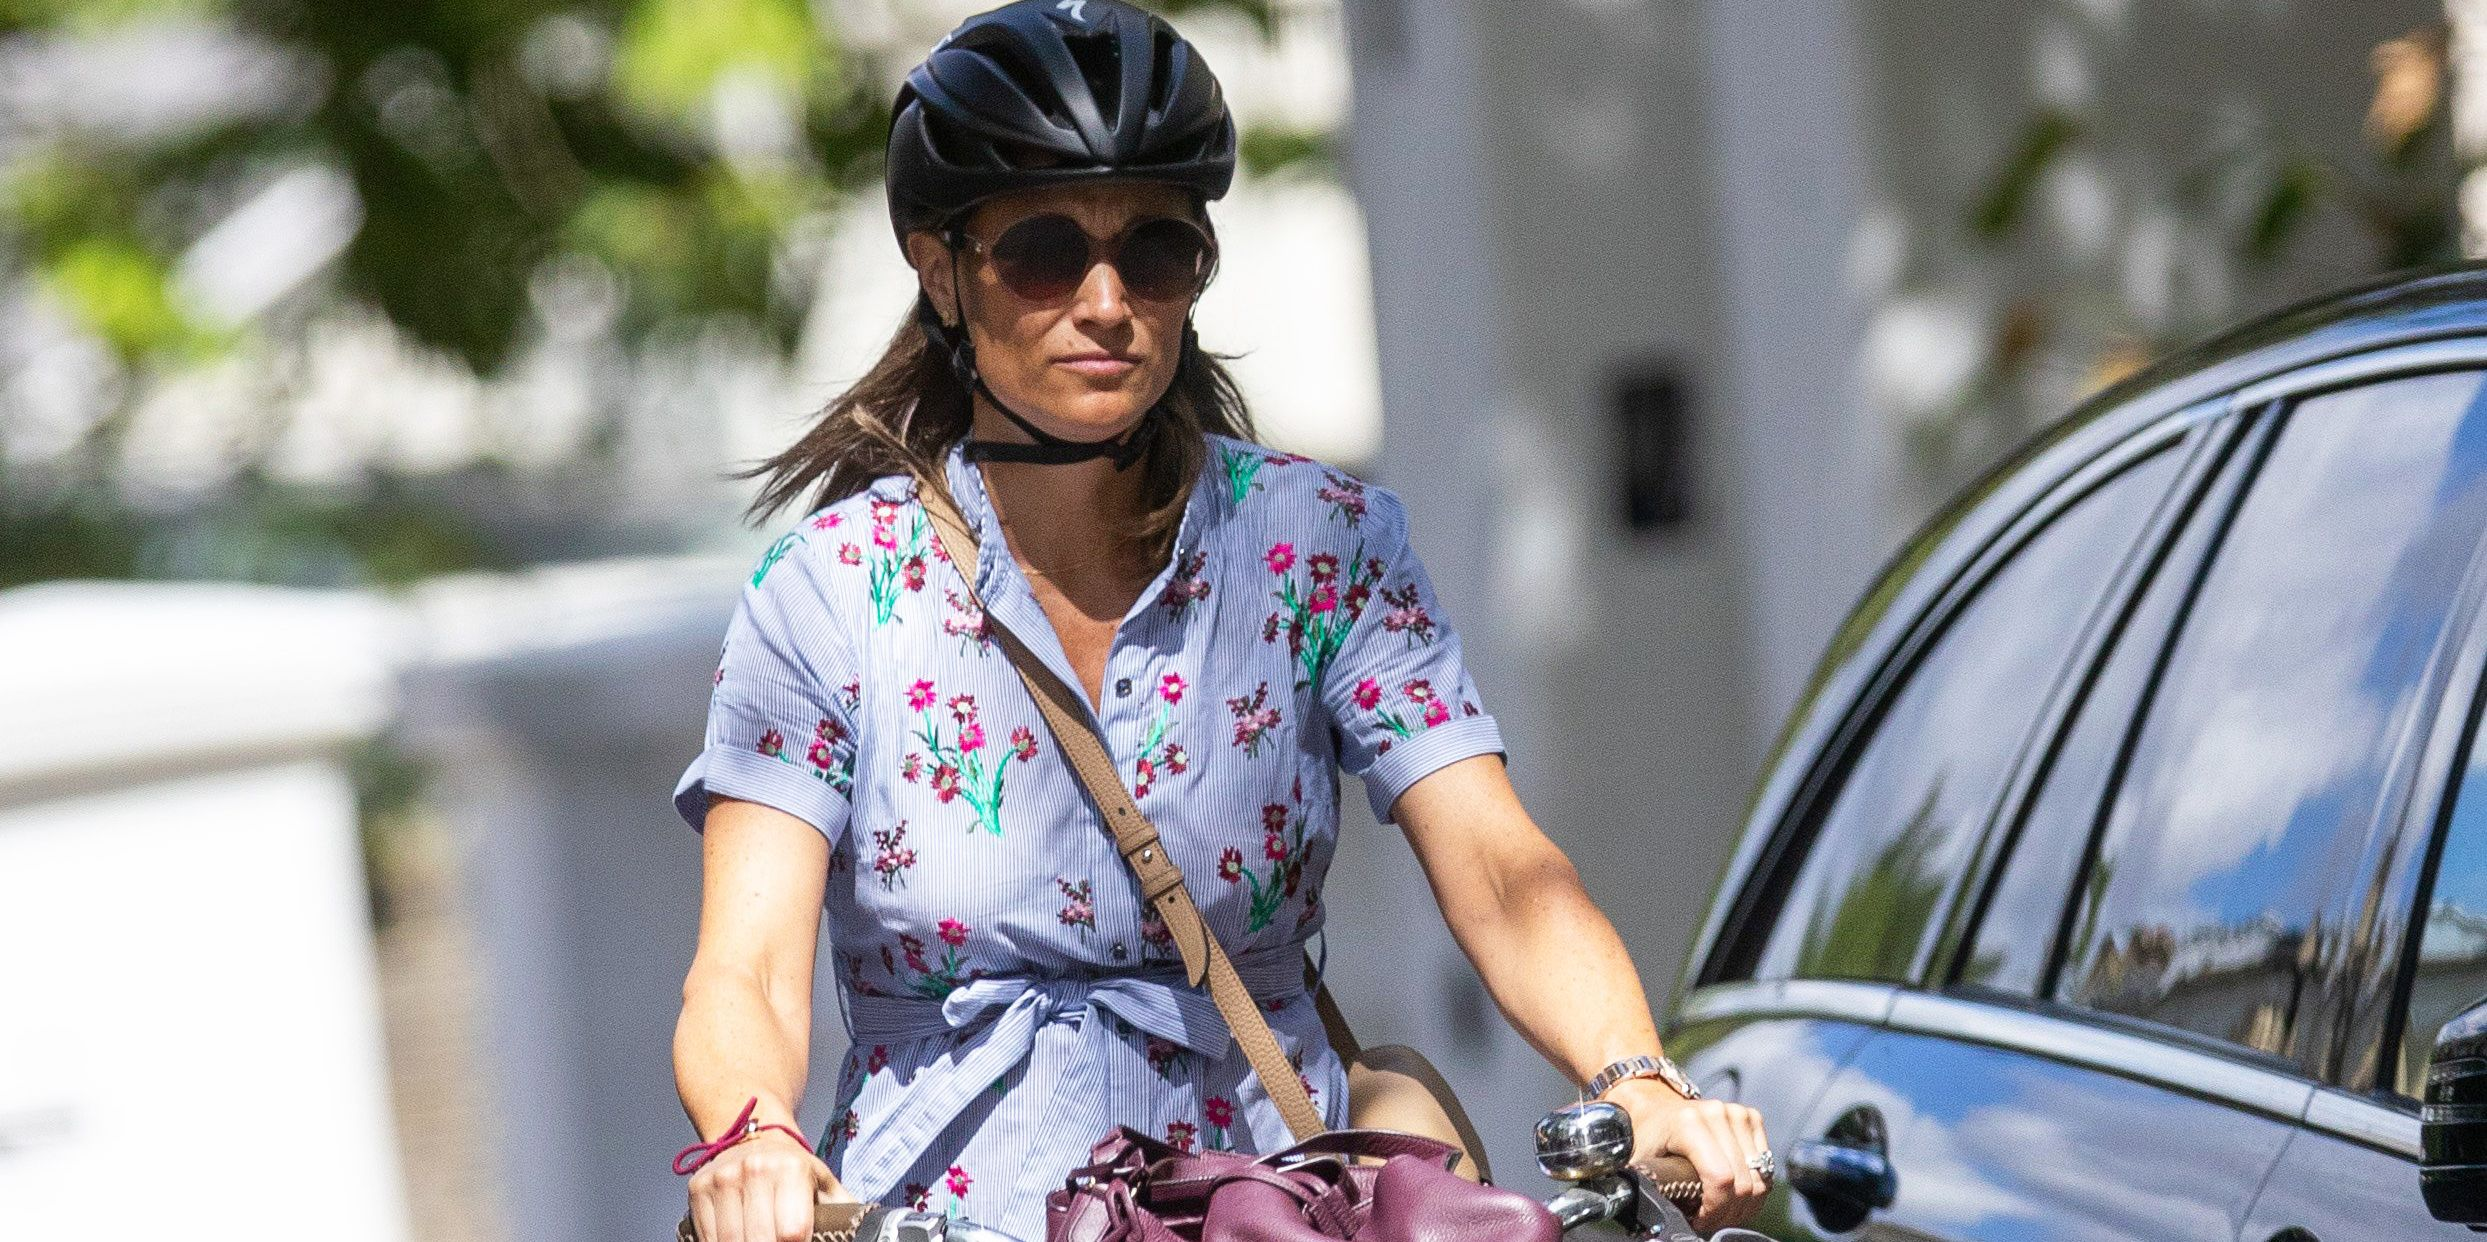 EXCLUSIVE: Pregnant Pippa Middleton seen riding her bike whilst out and about in London